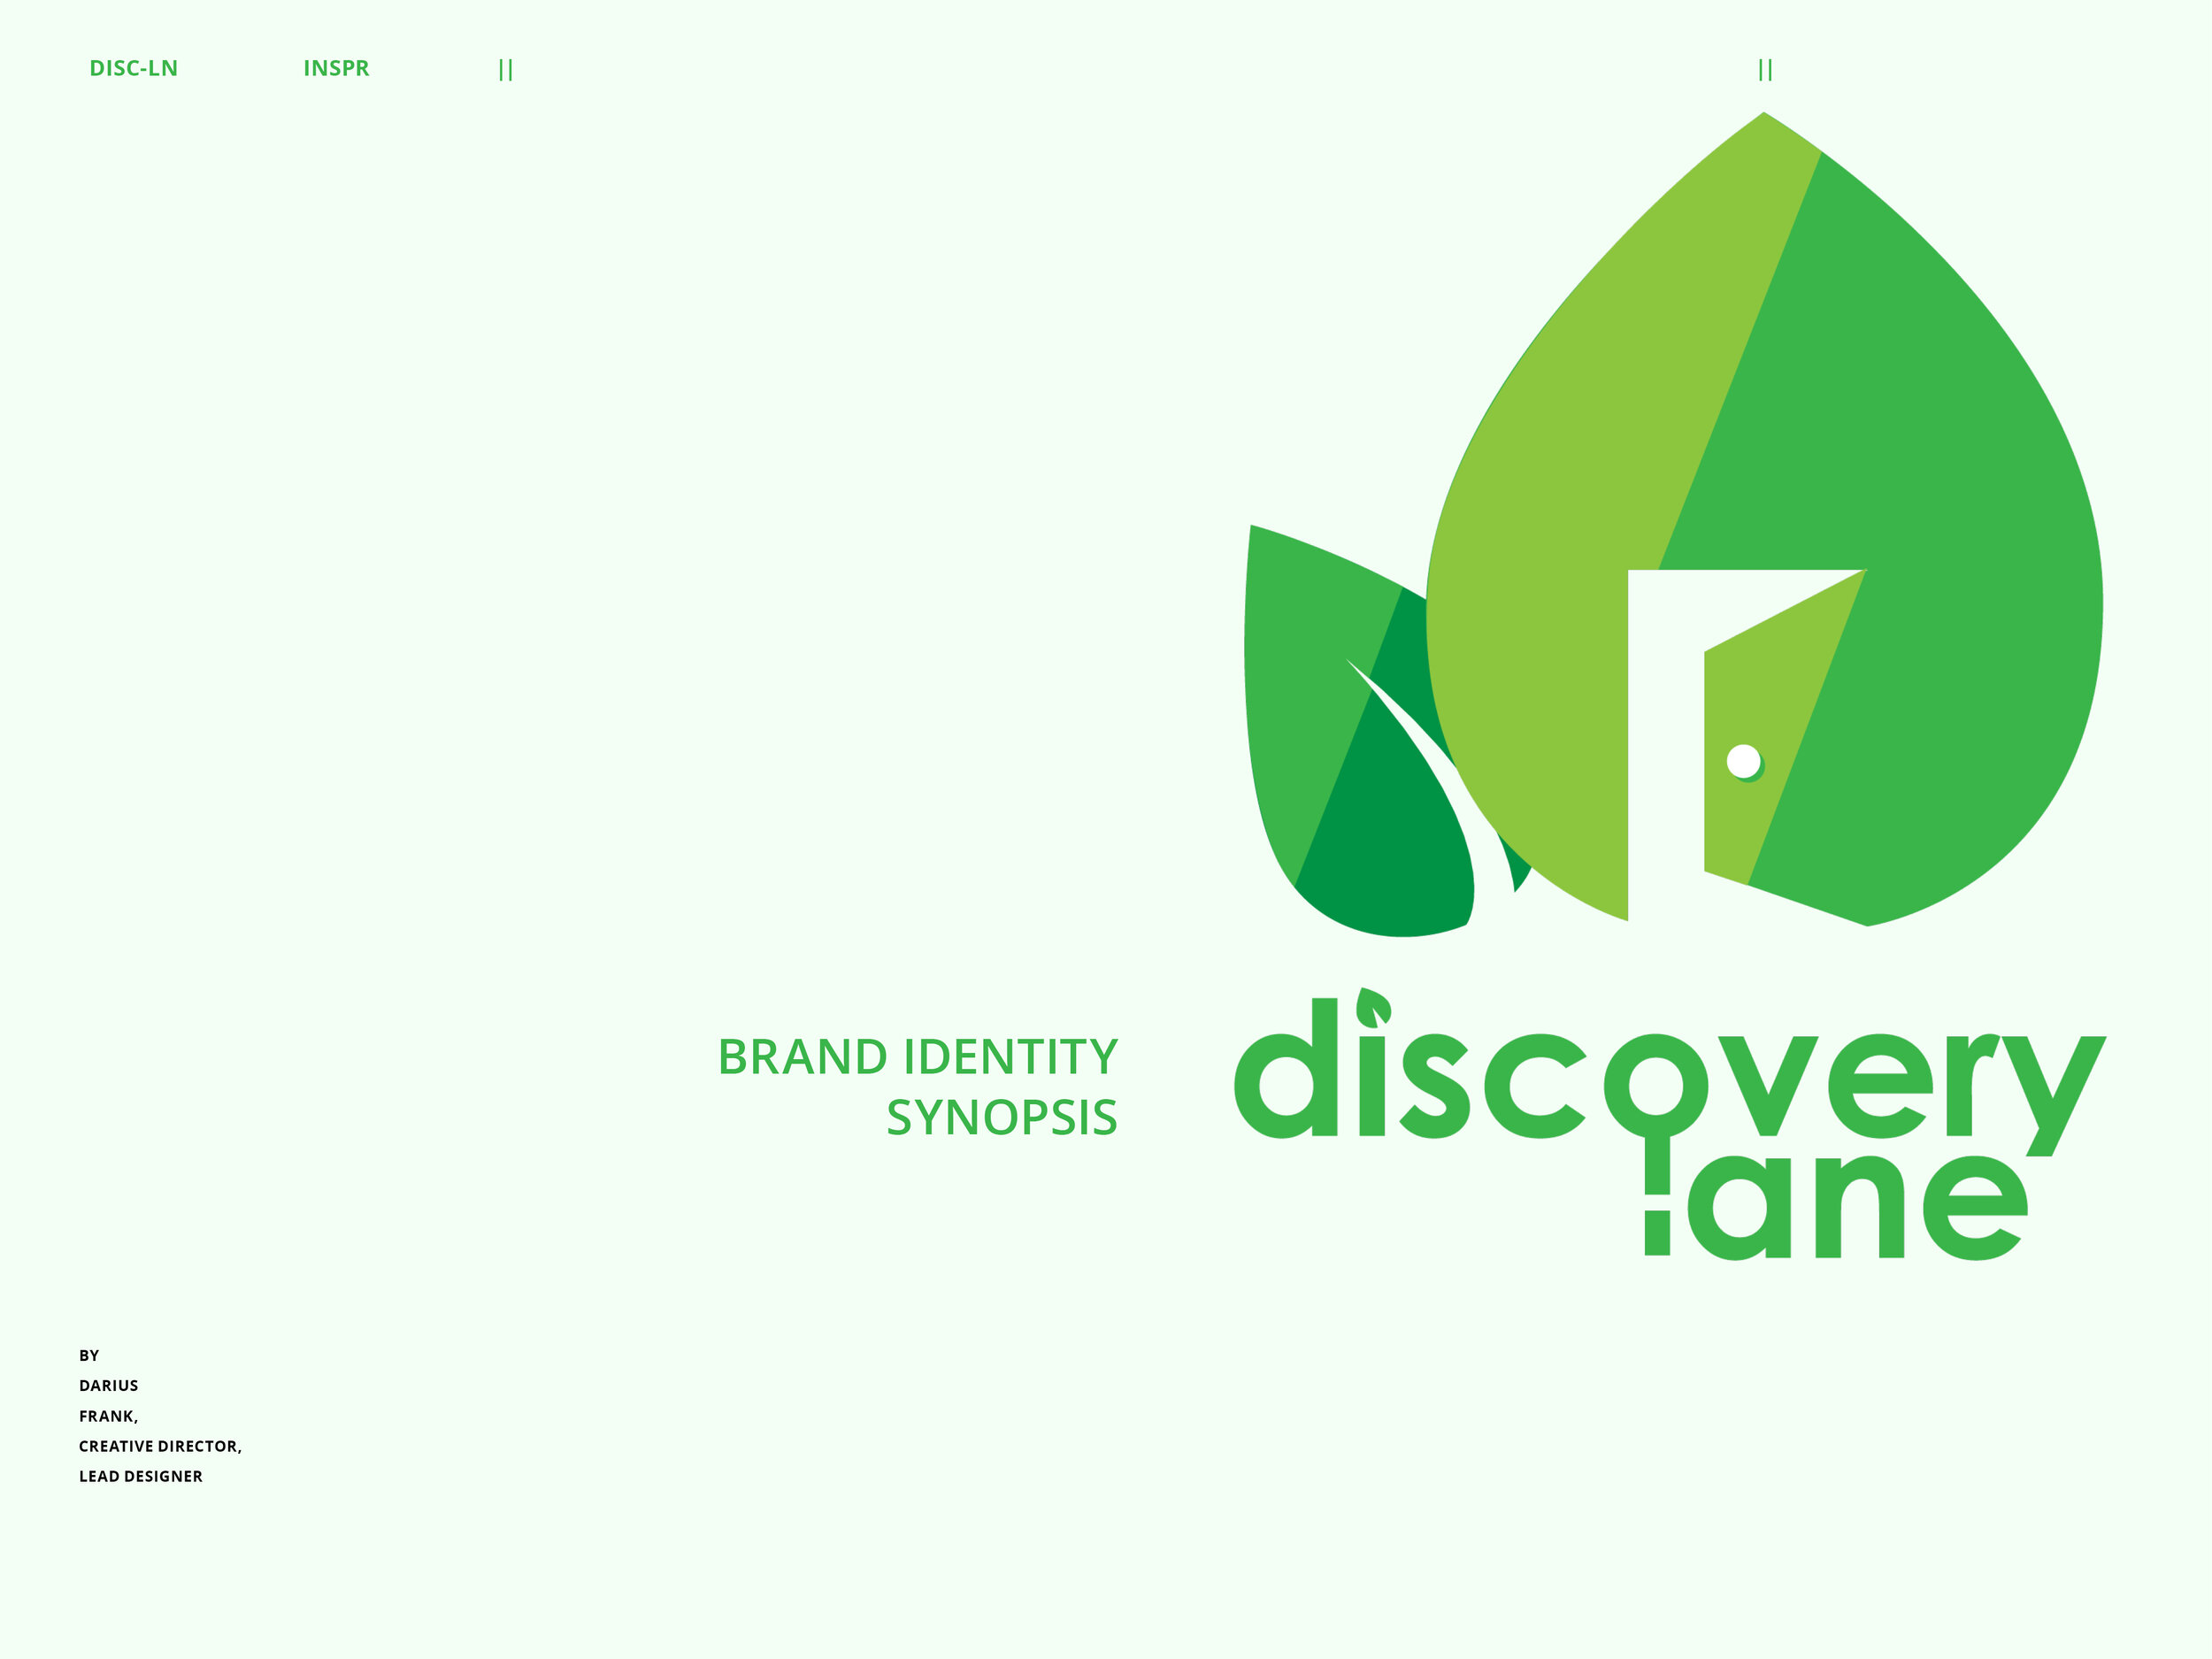 NEW WORK - Discovery Lane Brand Identity Synopsis